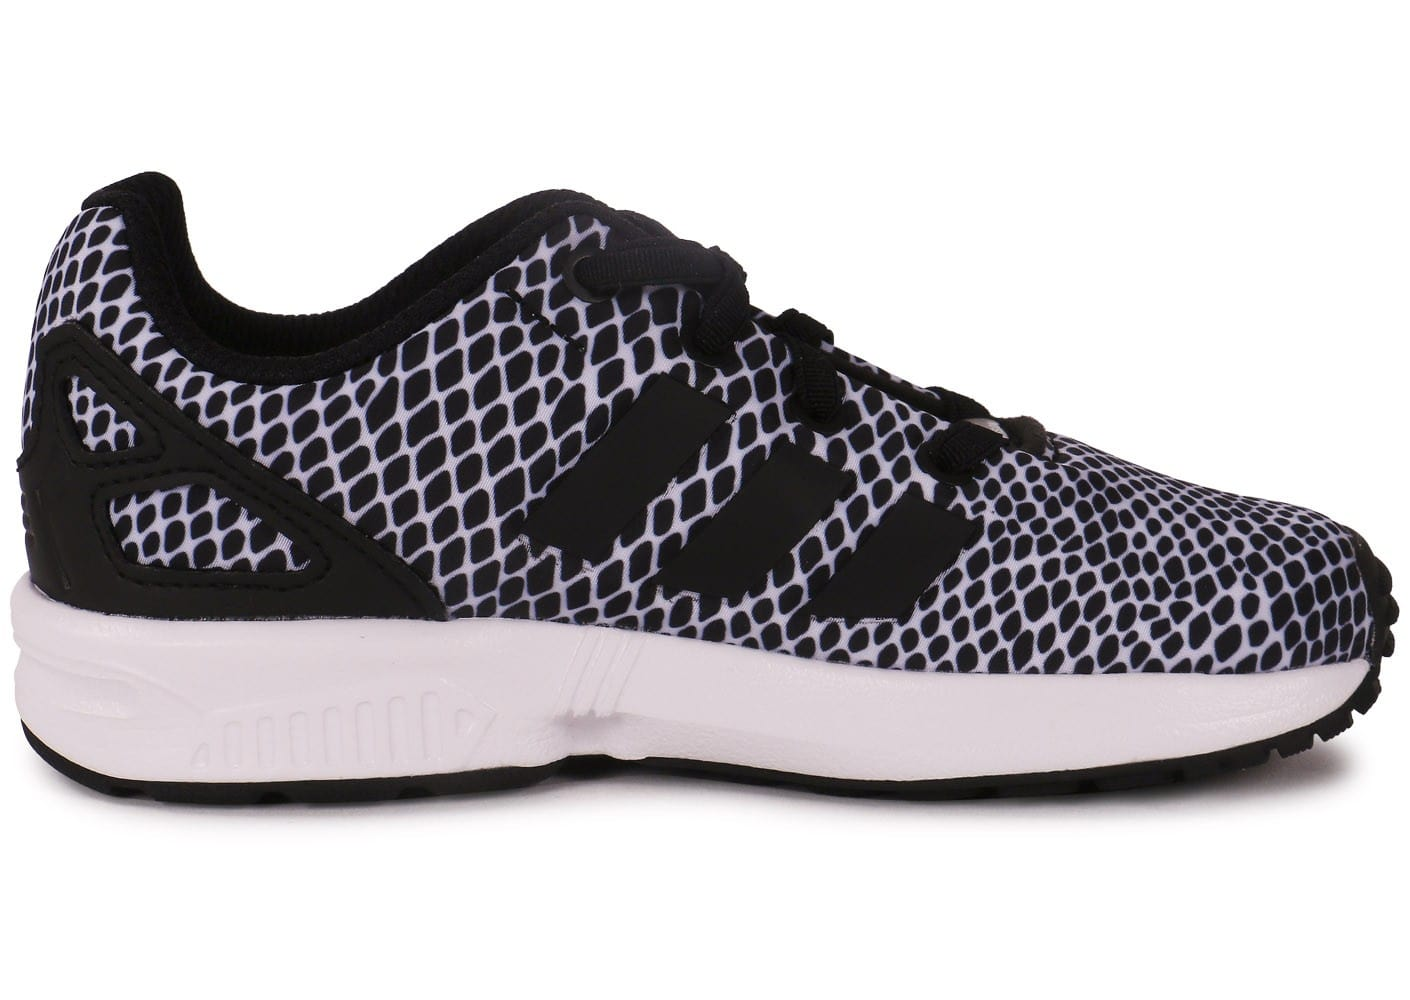 adidas zx flux b b noir et blanc chaussures adidas chausport. Black Bedroom Furniture Sets. Home Design Ideas